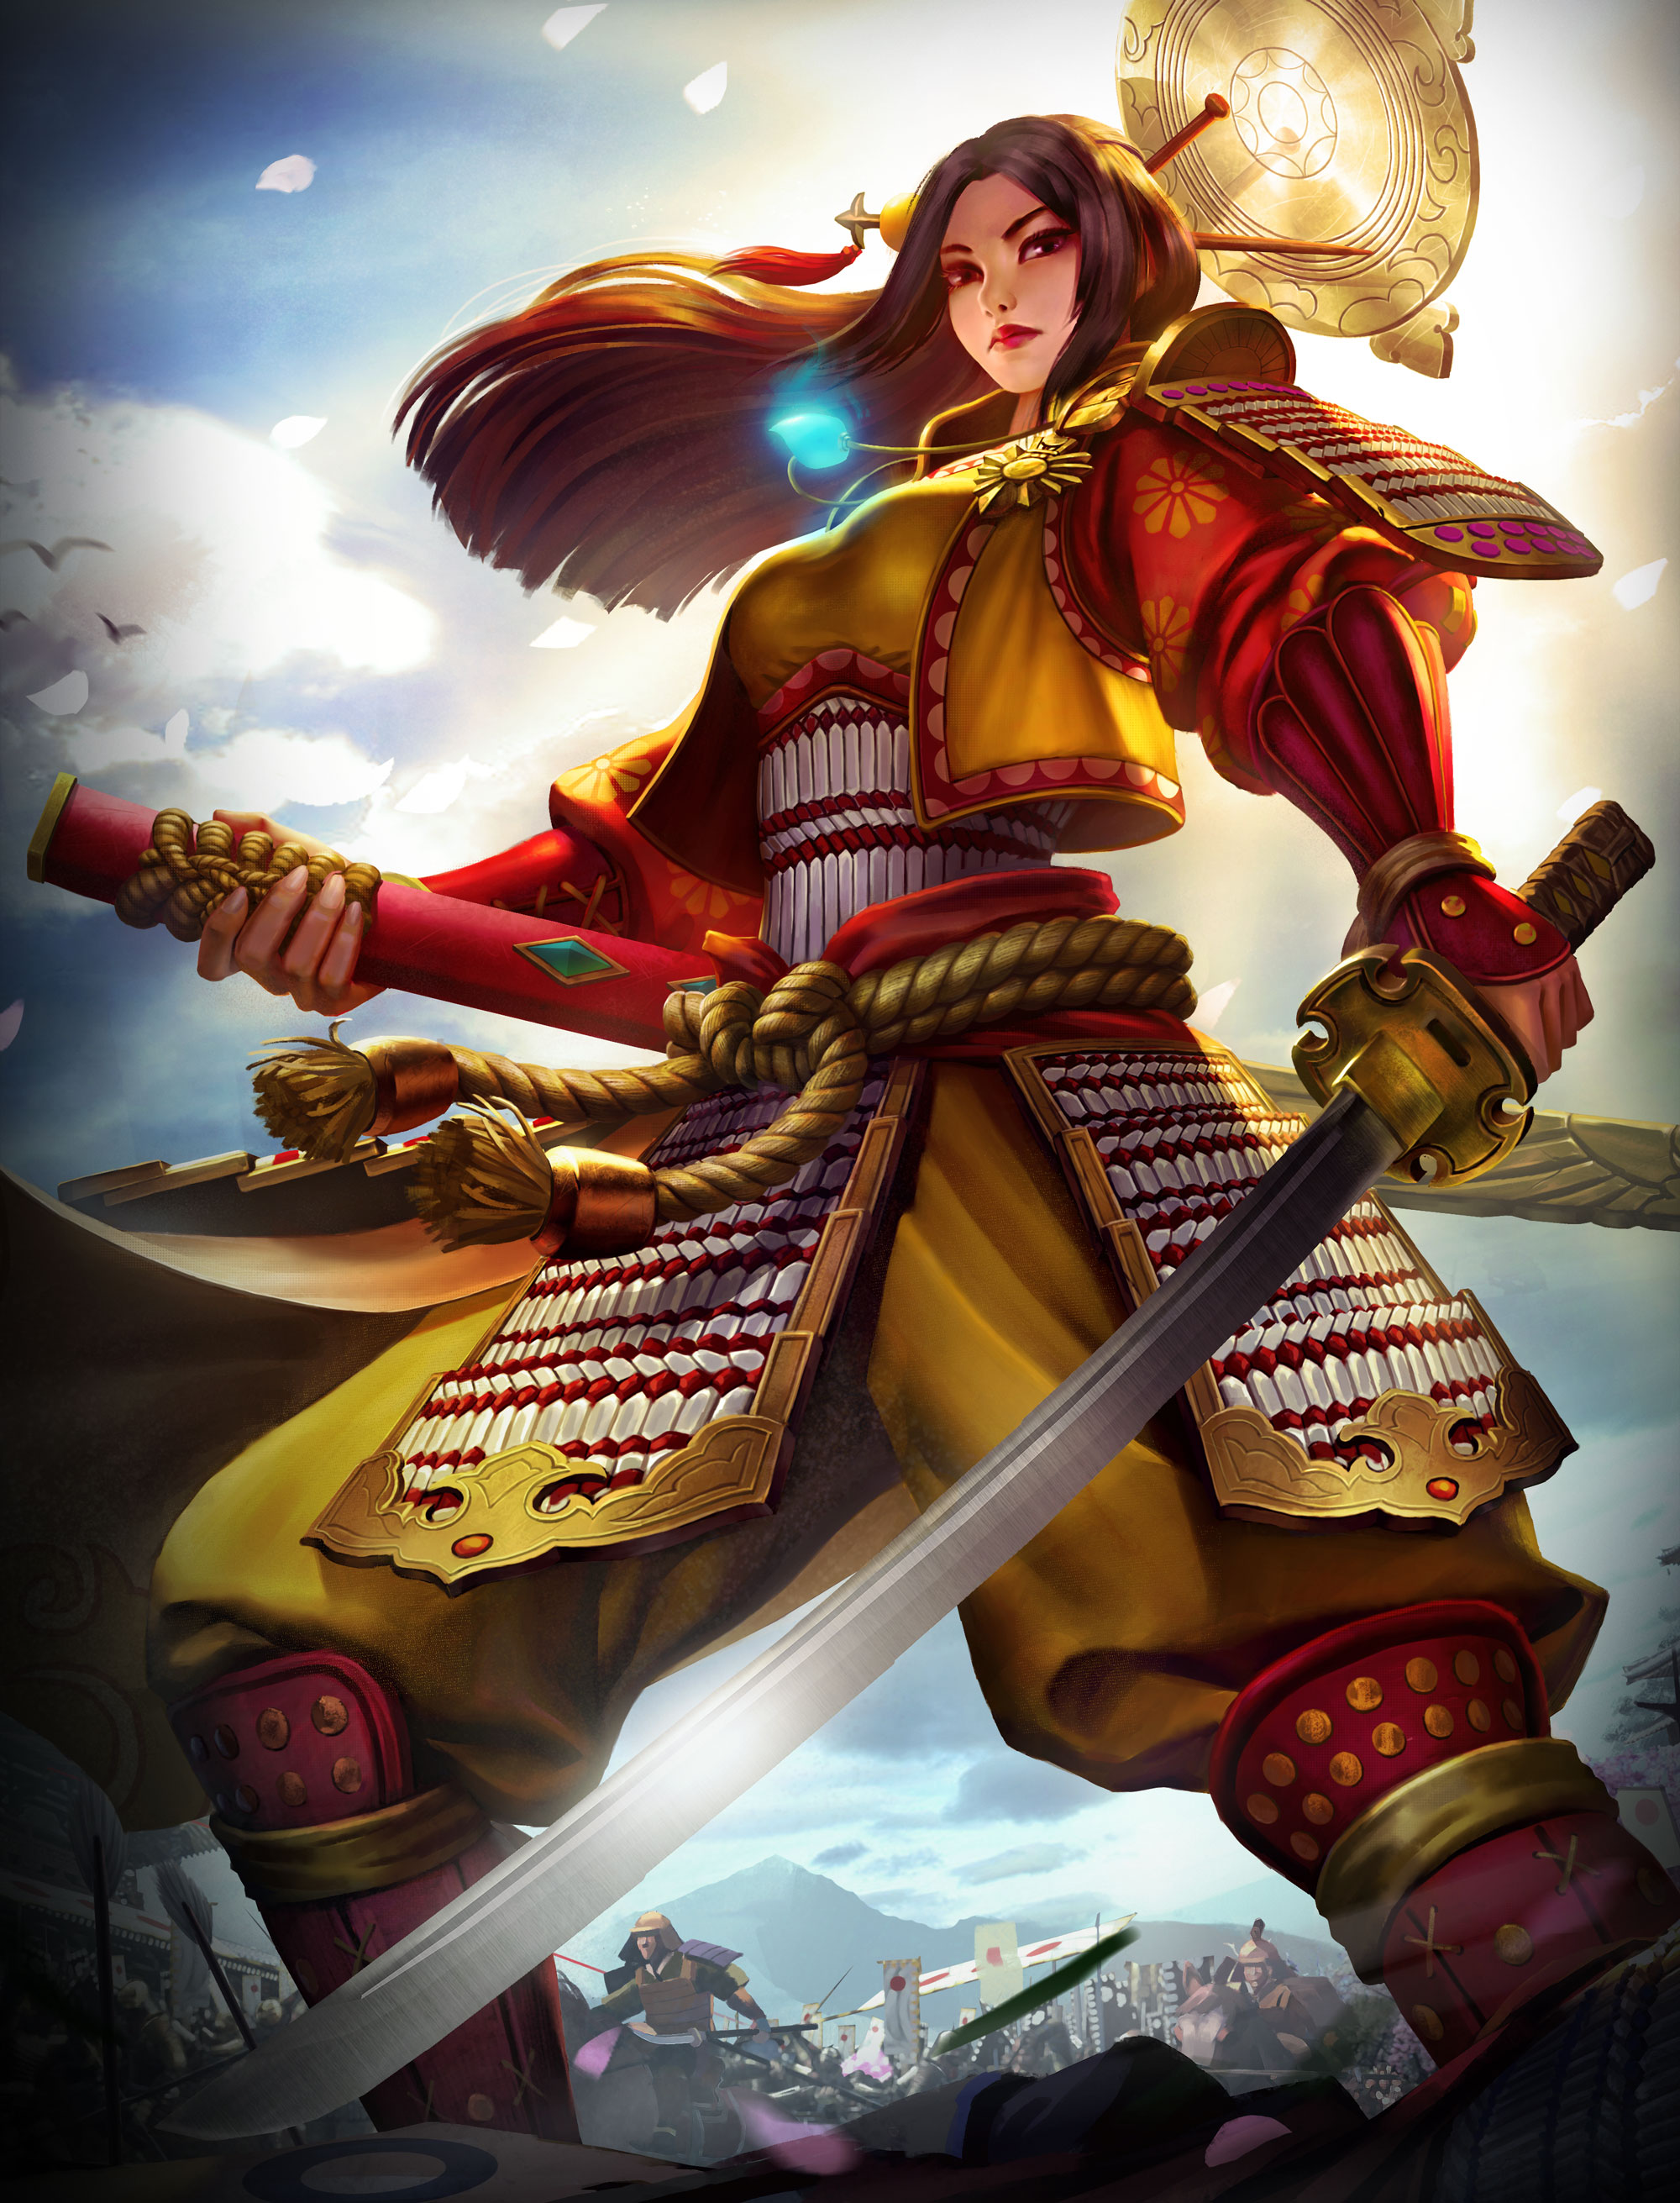 Drawn samurai mayan woman SMITE Amaterasu An Pantheon Adds